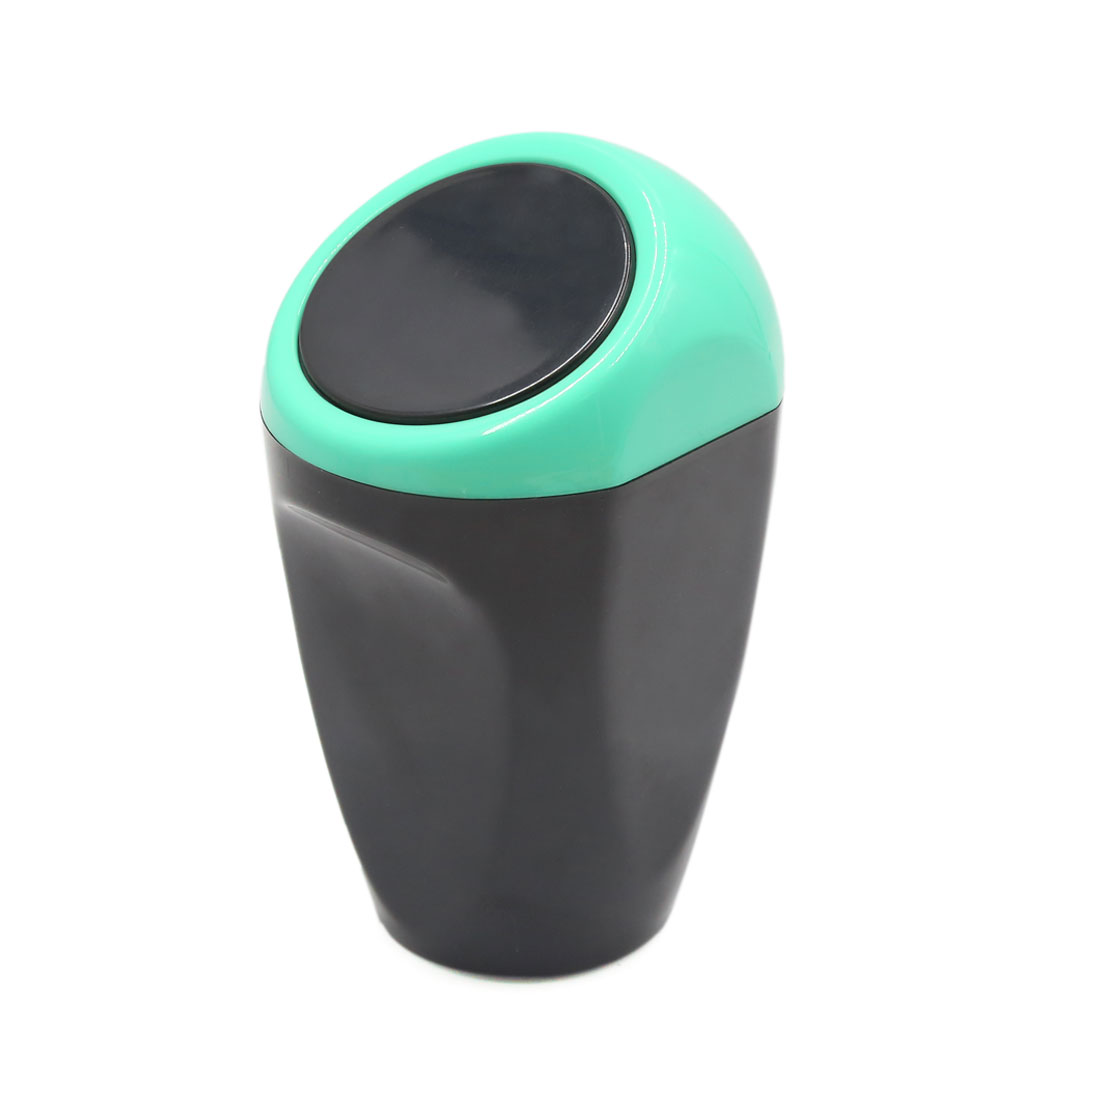 Blue Black Mini Multipurpose Plastic Car Trash Rubbish Bin Garbage Can Holder